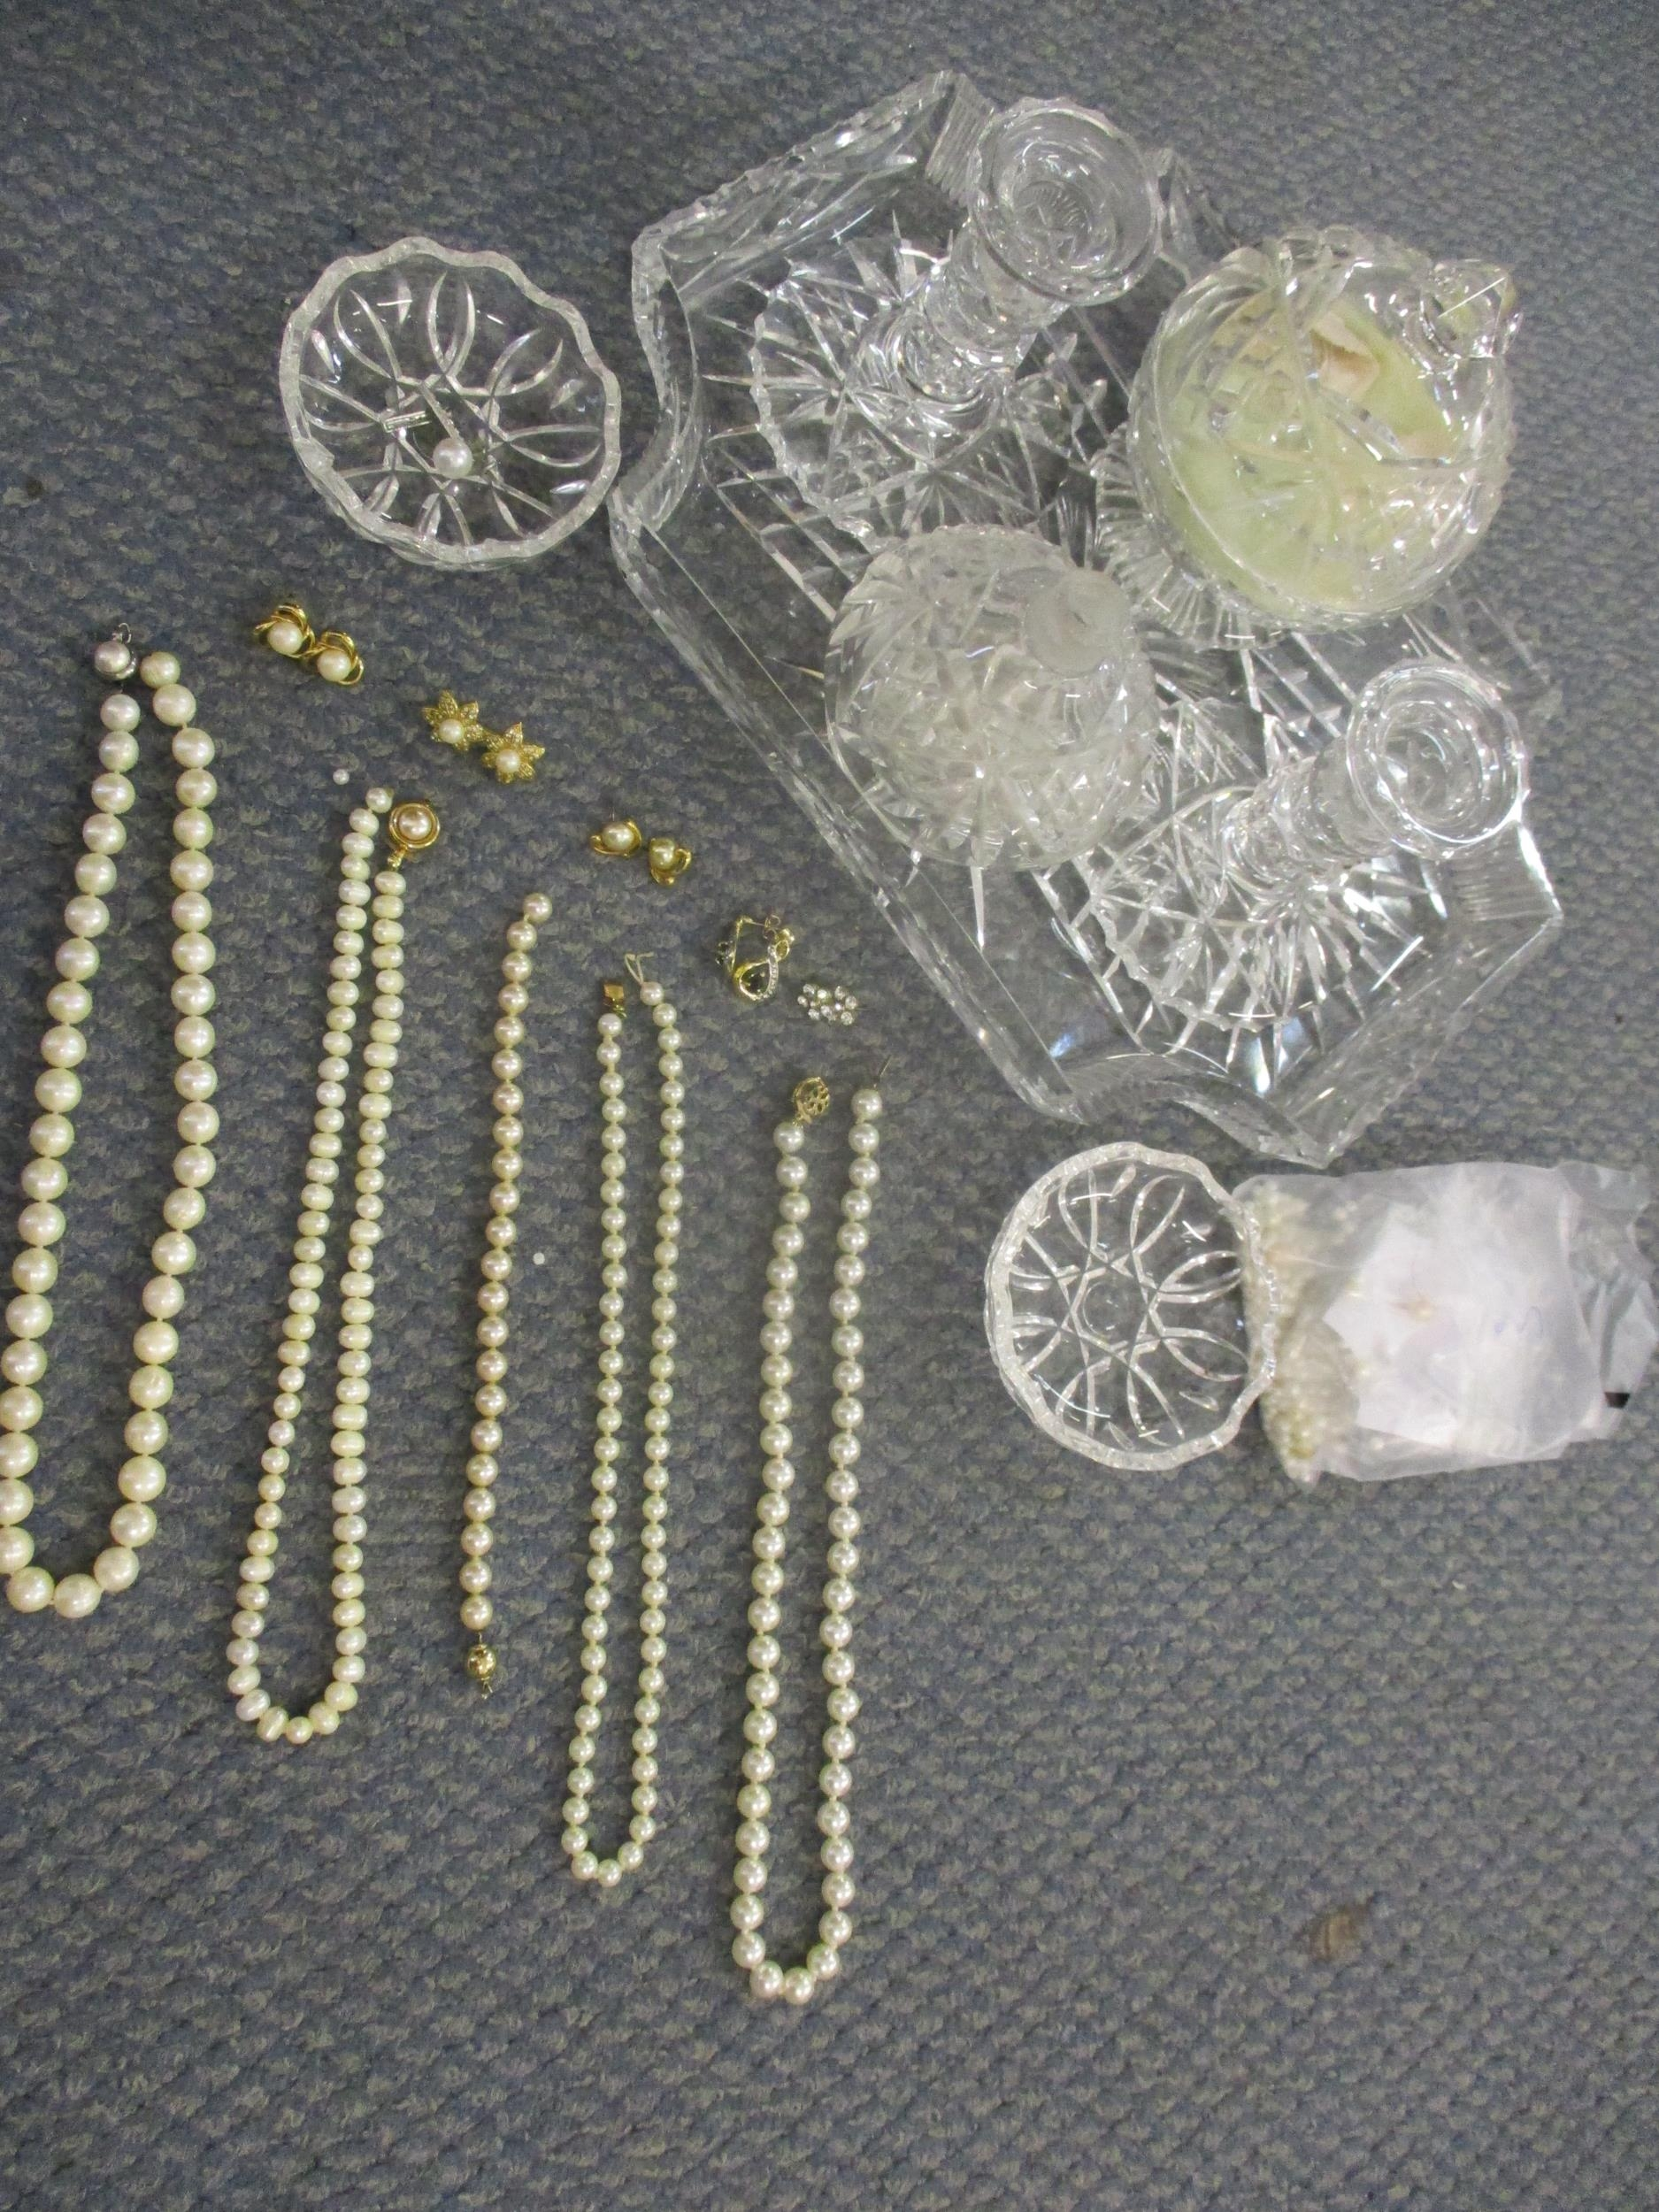 A 20th century cut glass dressing table set together with pearl and faux pearl costume jewellery